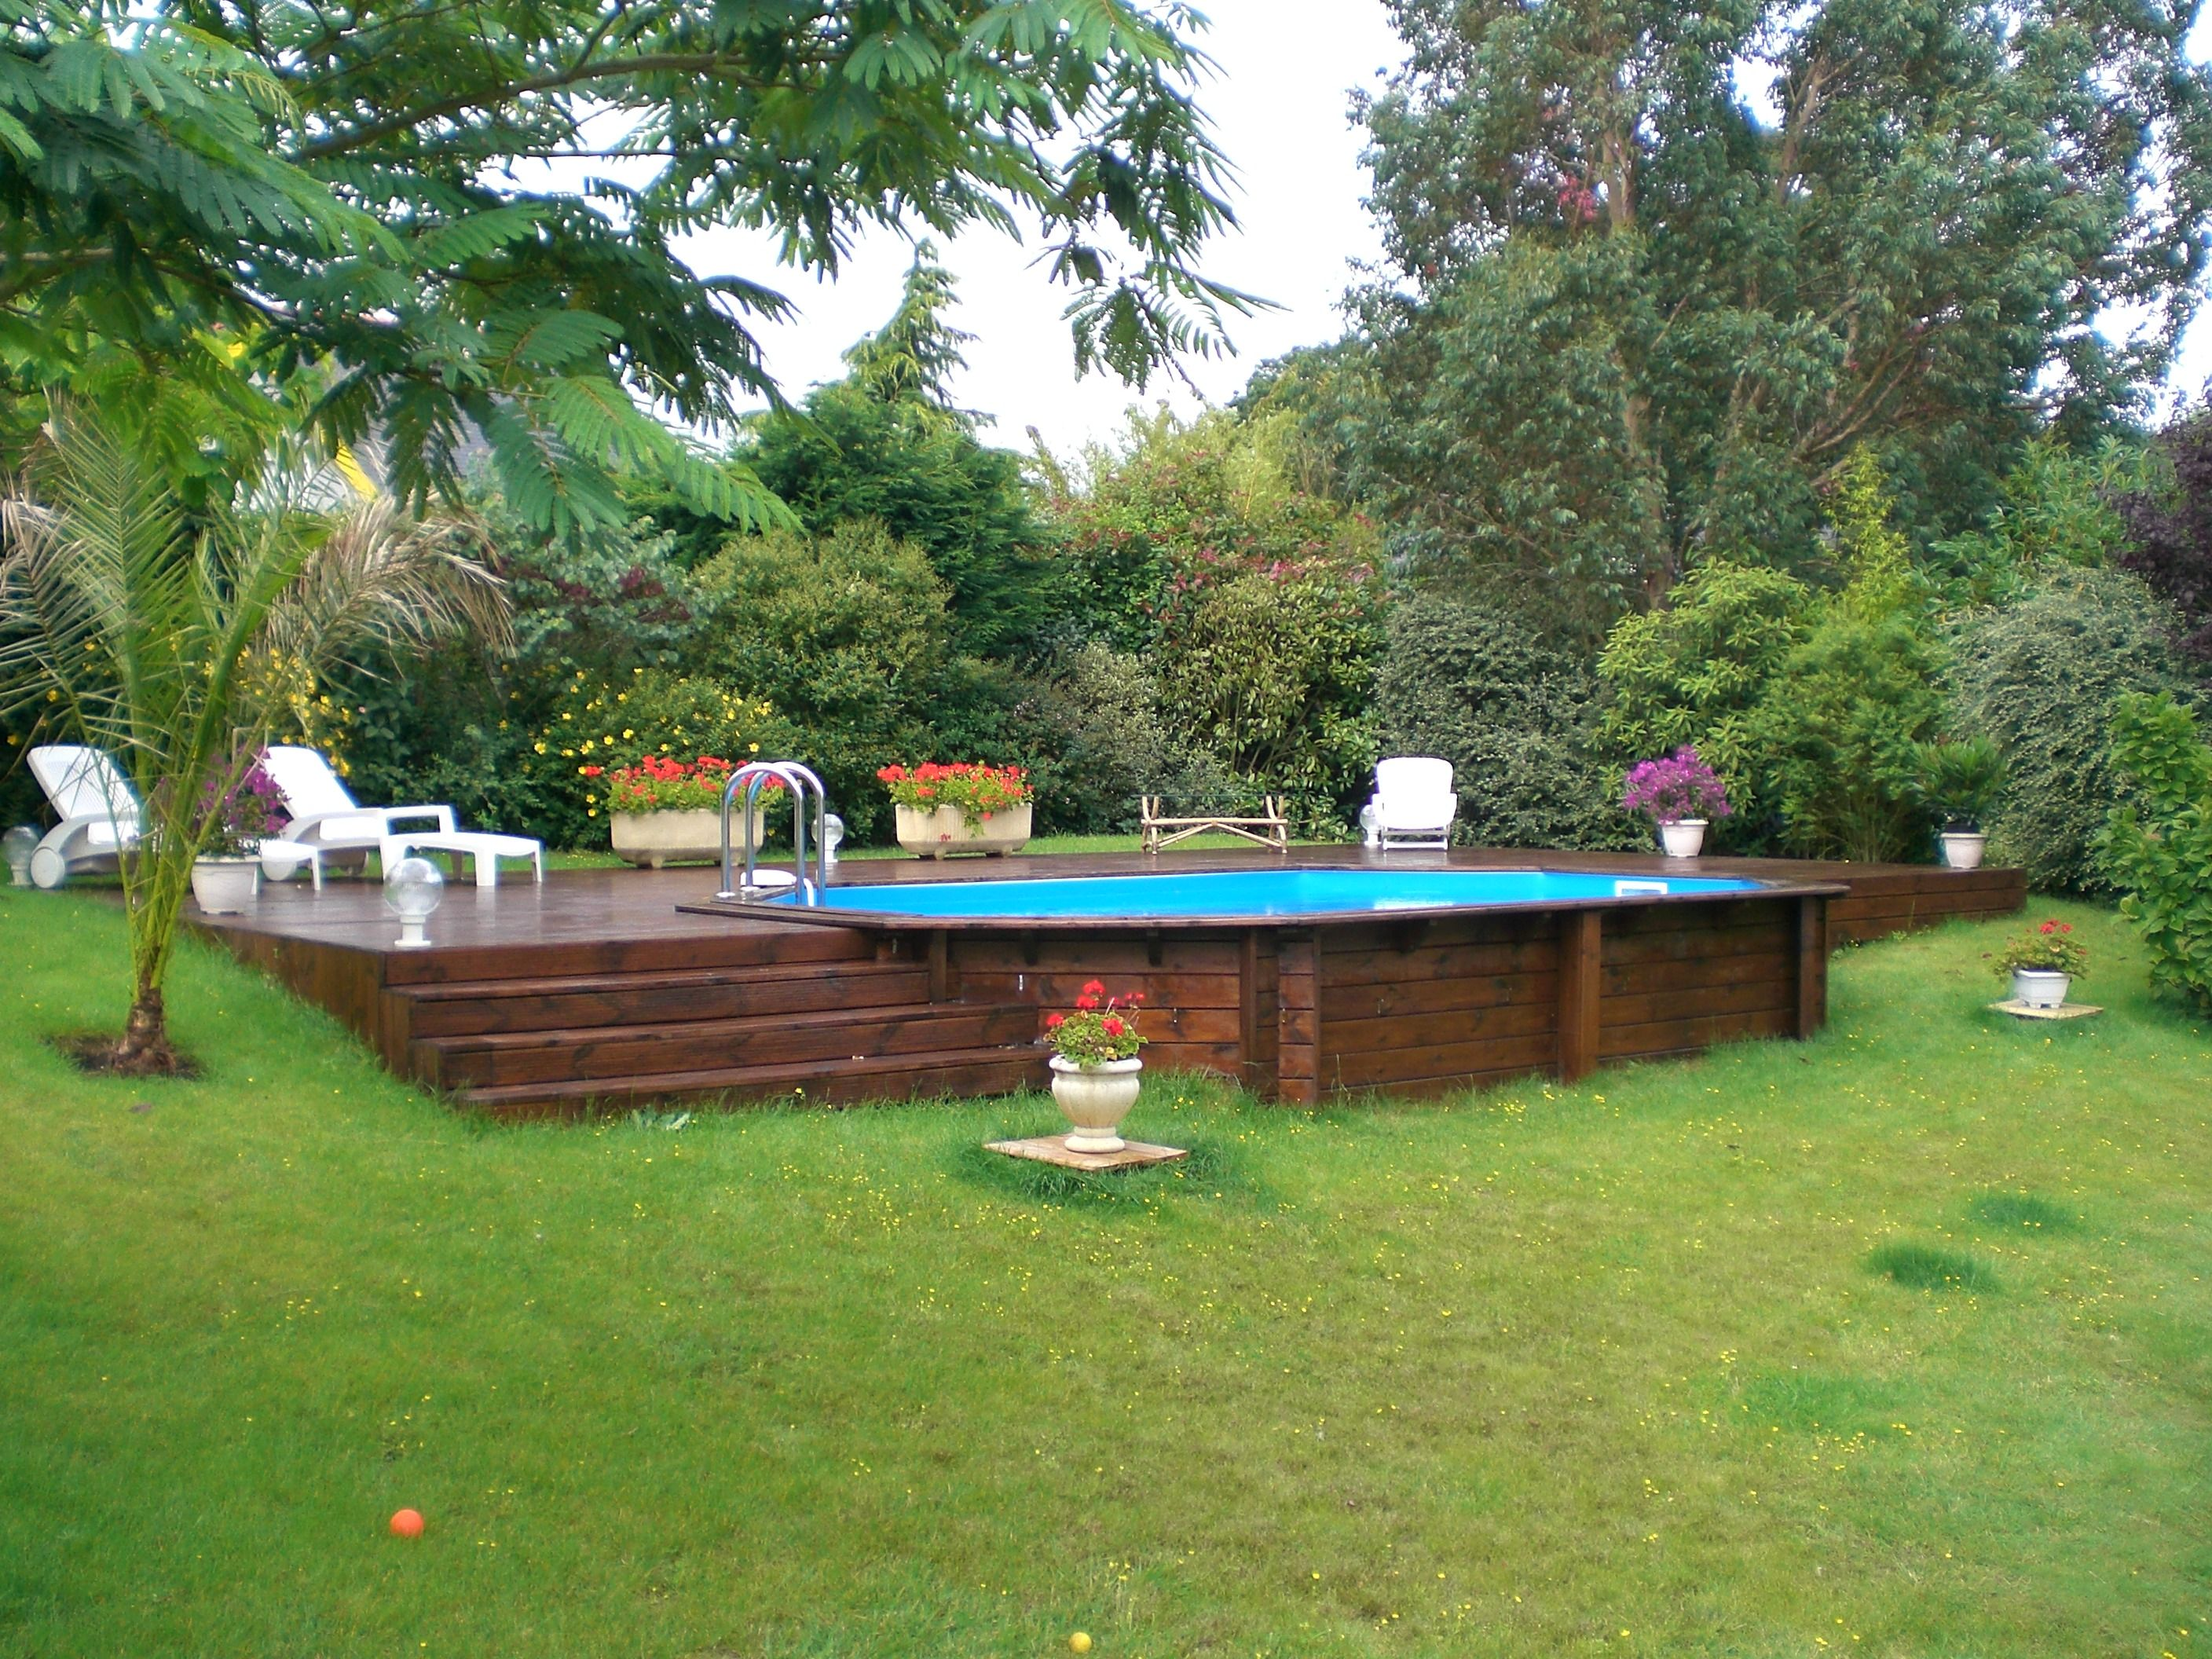 Piscine hors sol en bois semi enterr e sur terrain en for Kit piscine bois semi enterree